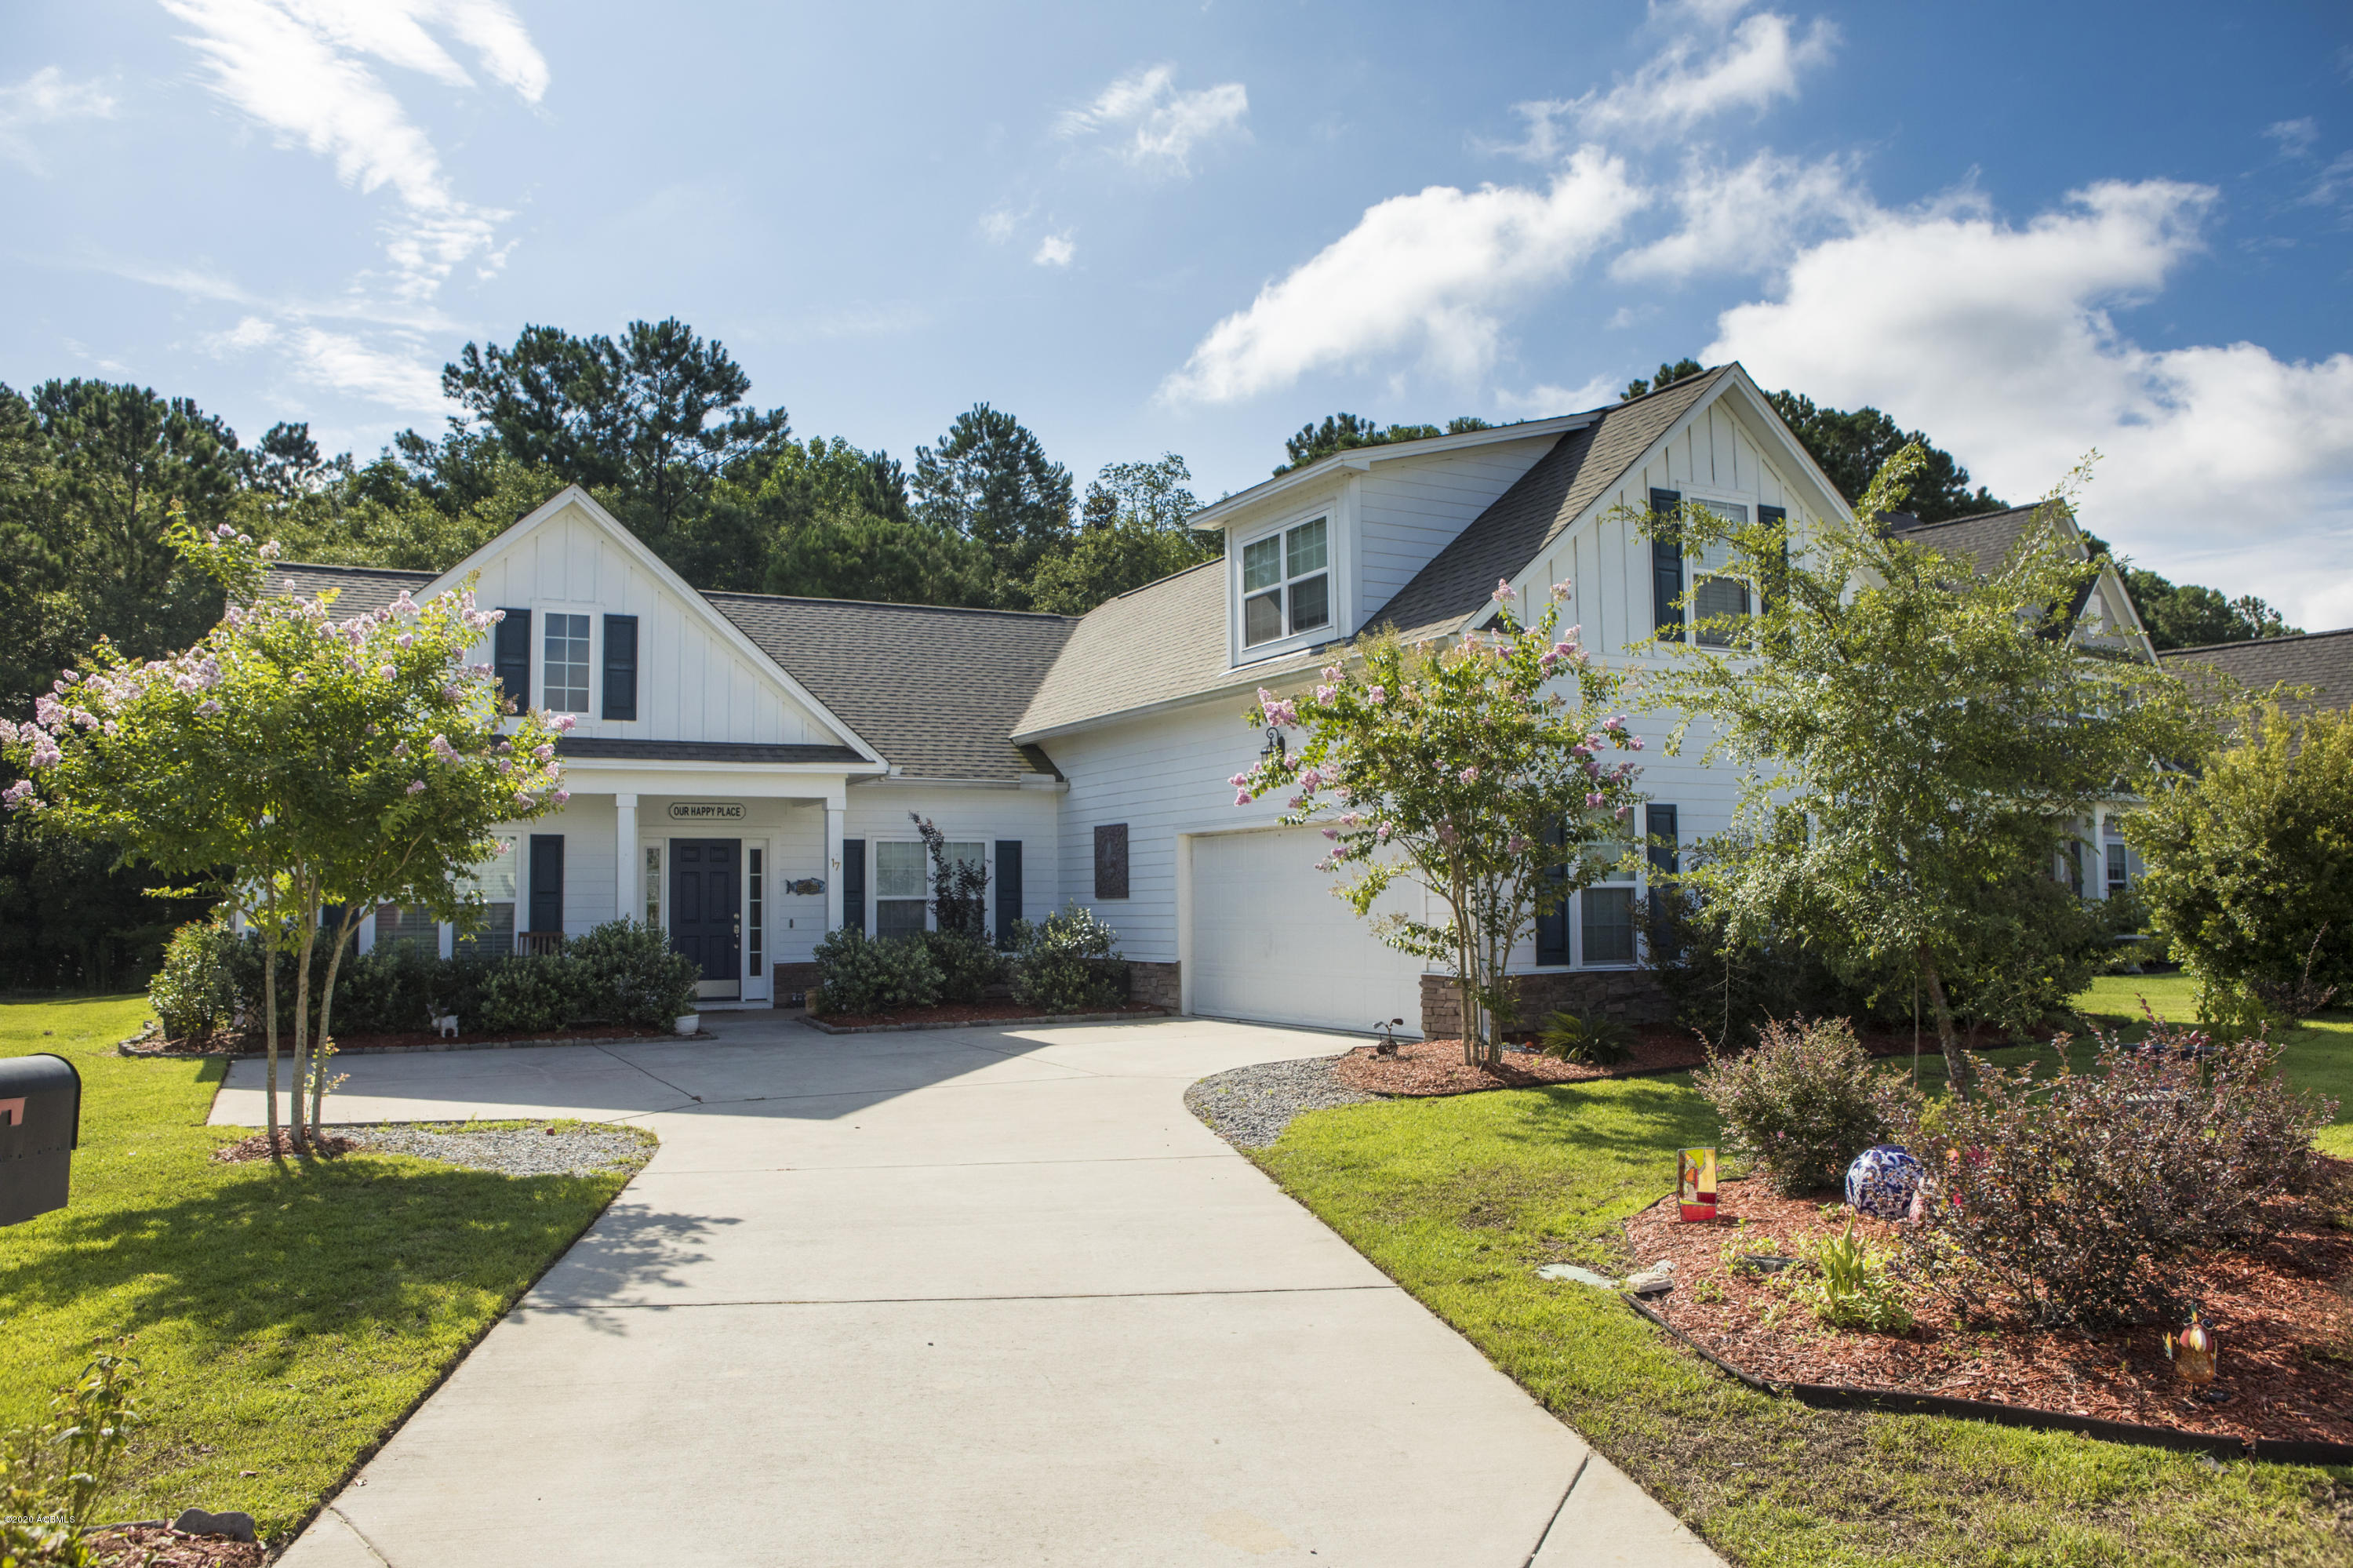 Photo of 17 Stanton Court, Bluffton, SC 29910